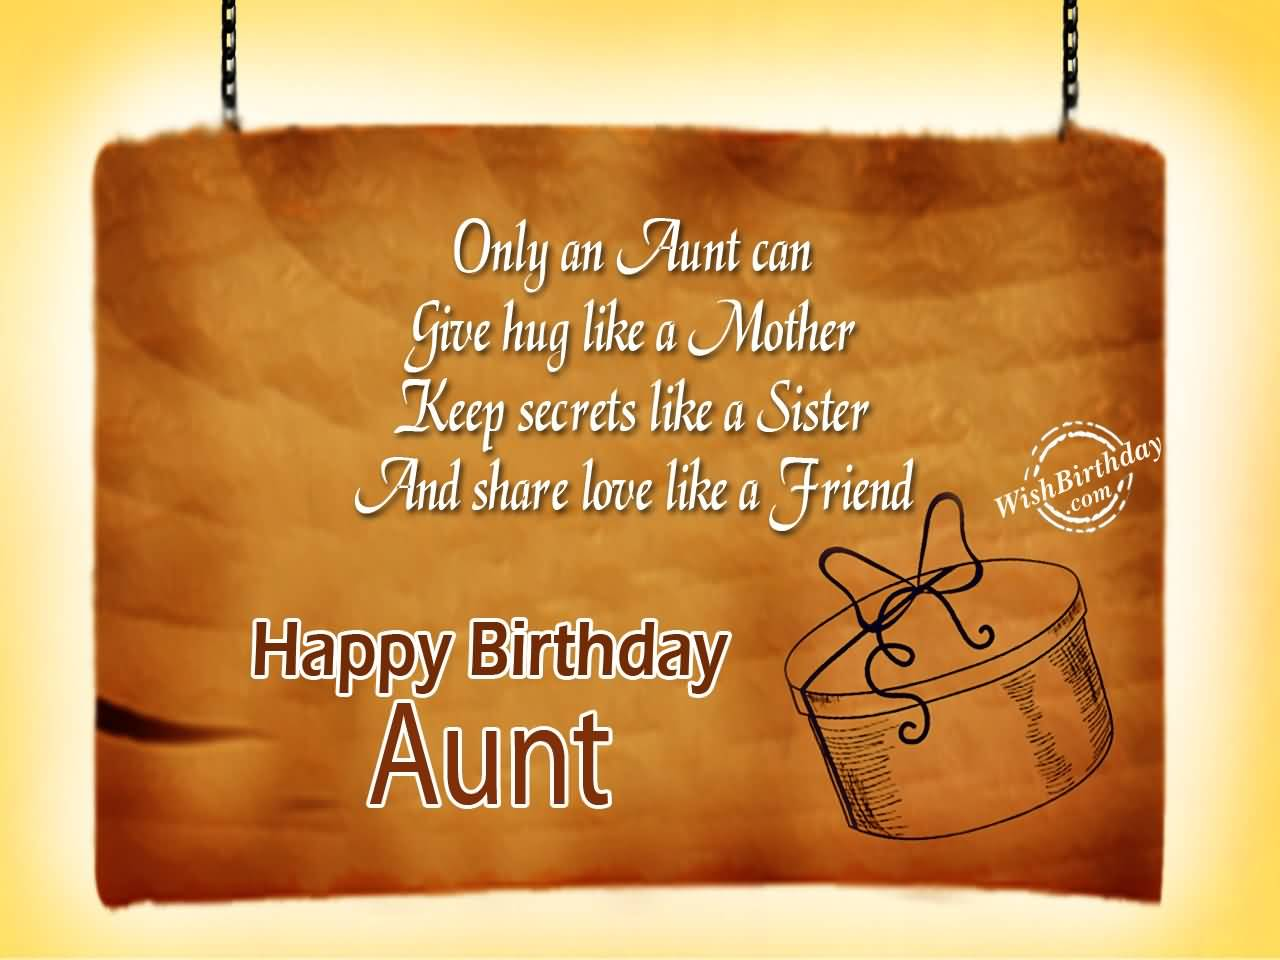 39 Lovely Aunt Birthday Wishes Greetings Pictures – Awesome Birthday Greetings